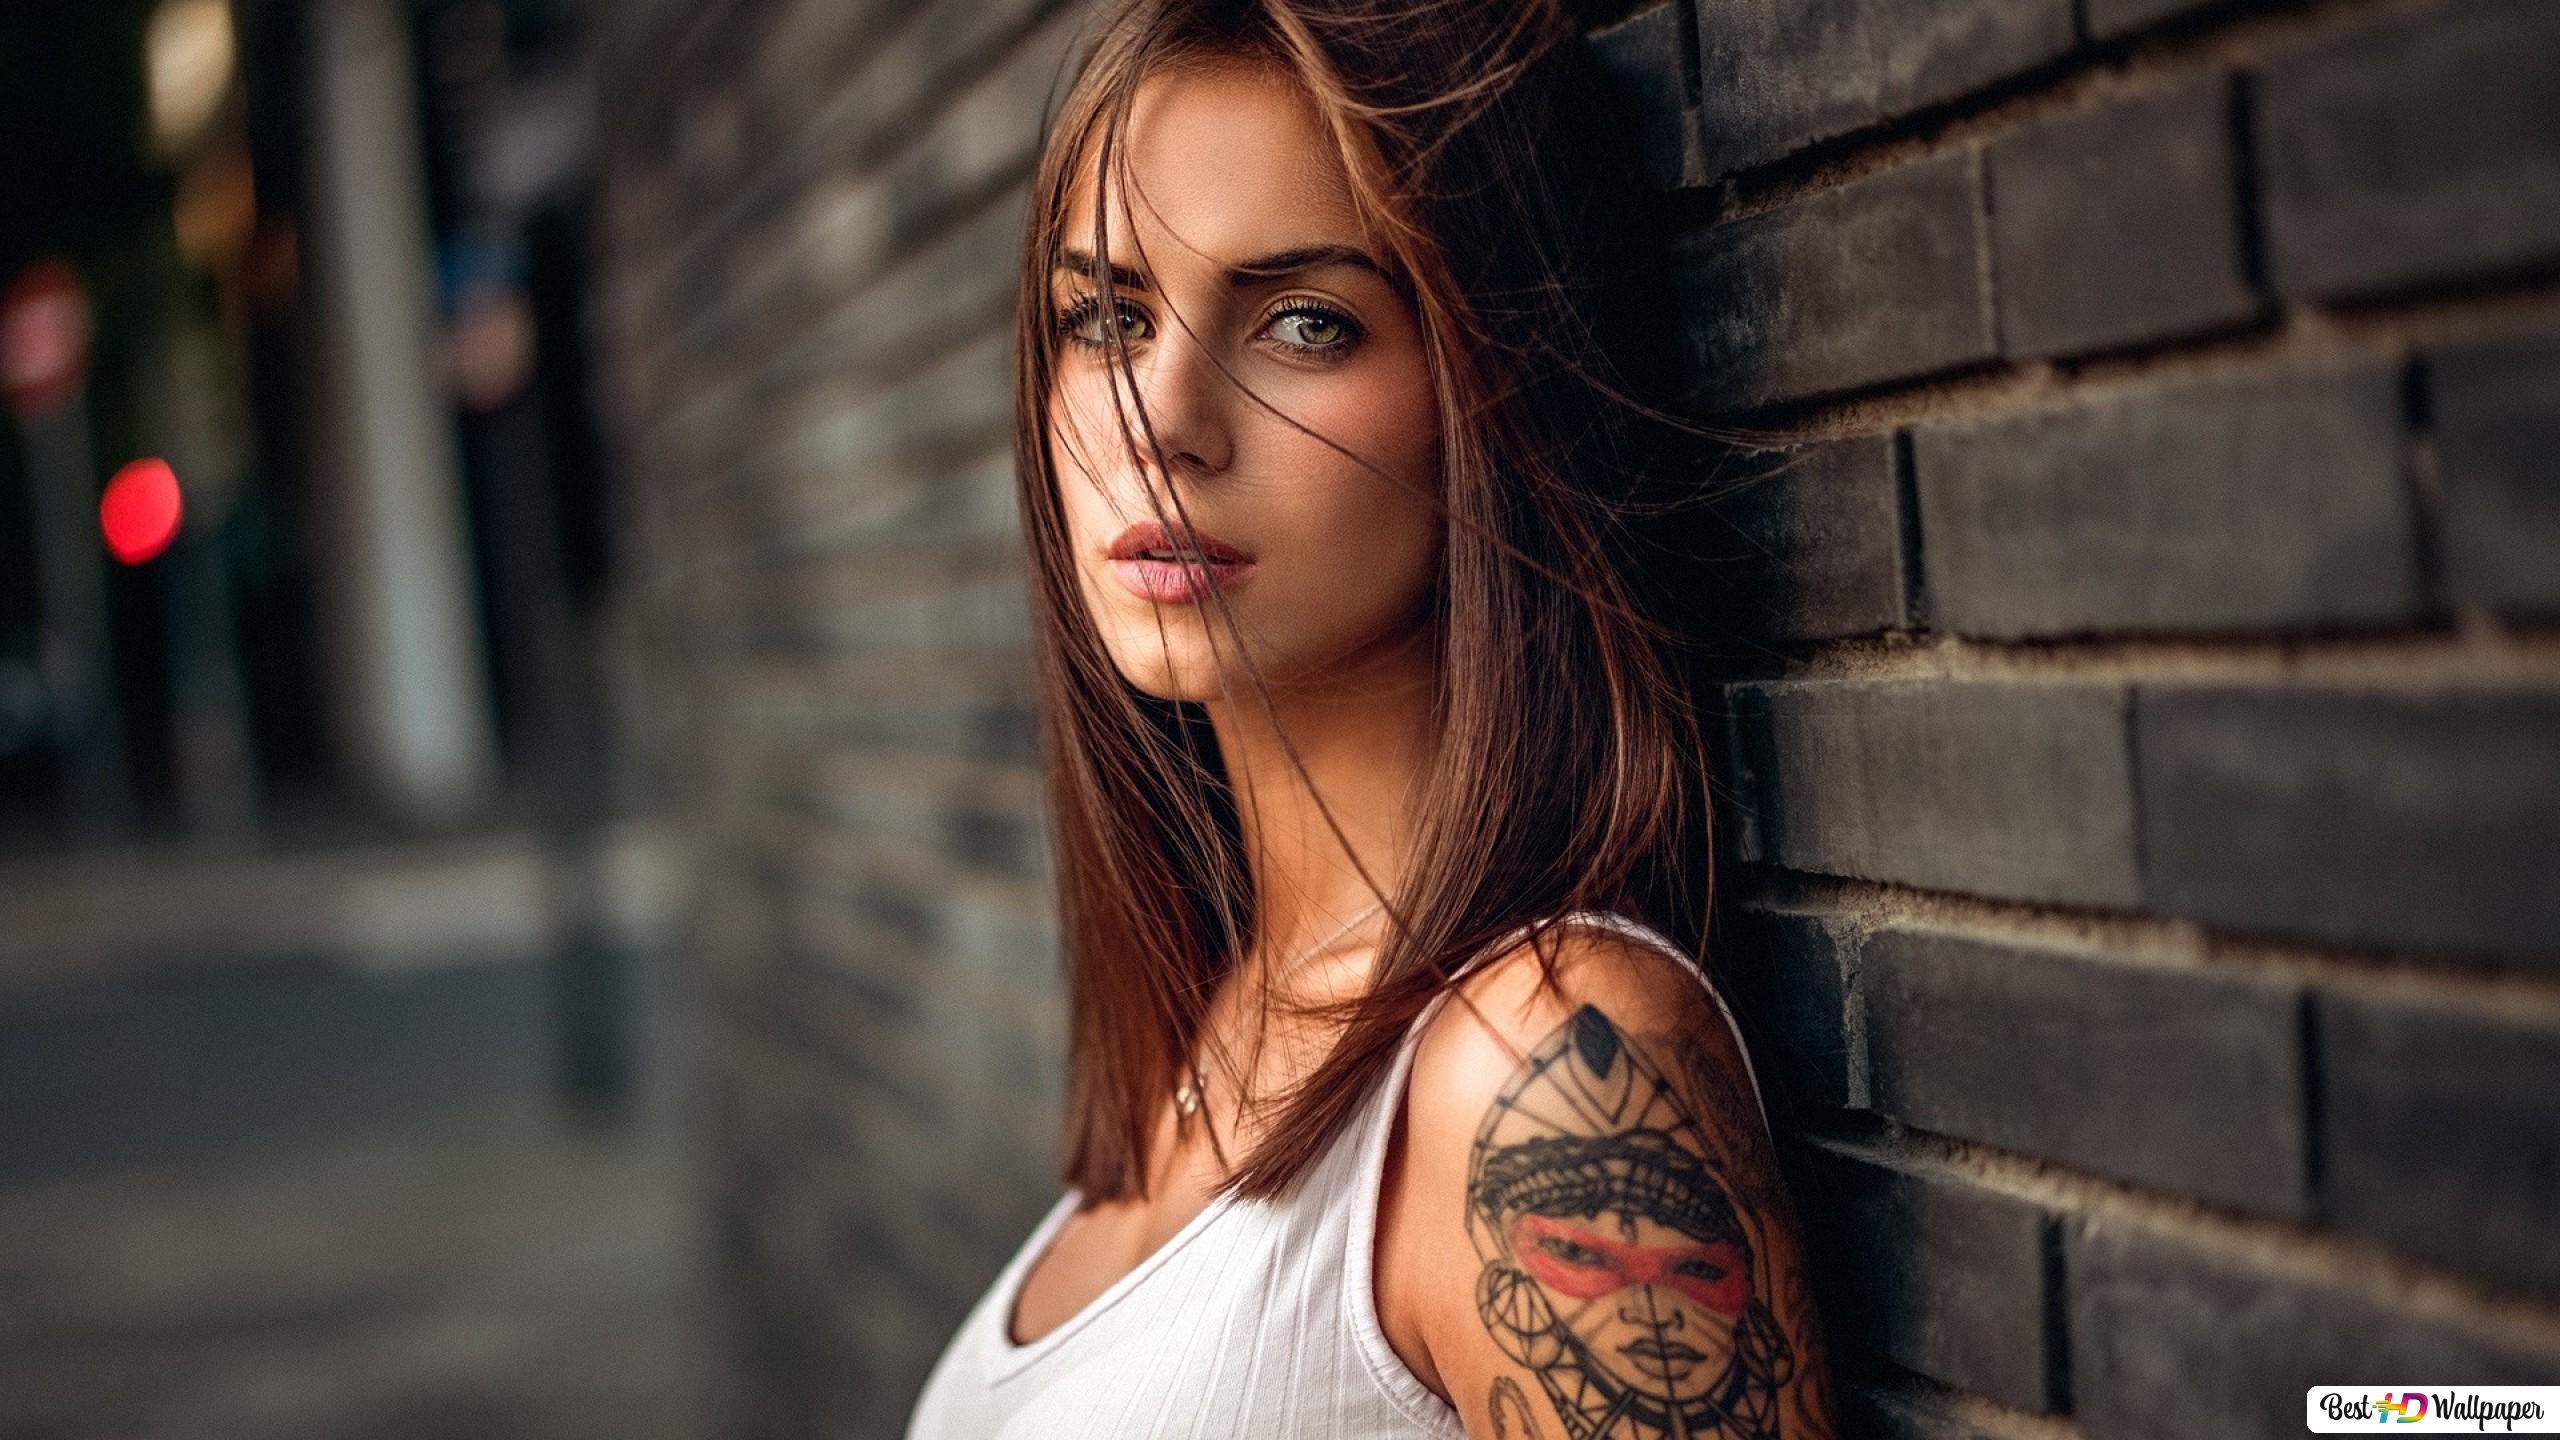 Girl With Shoulder Tattoo Hd Wallpaper Download